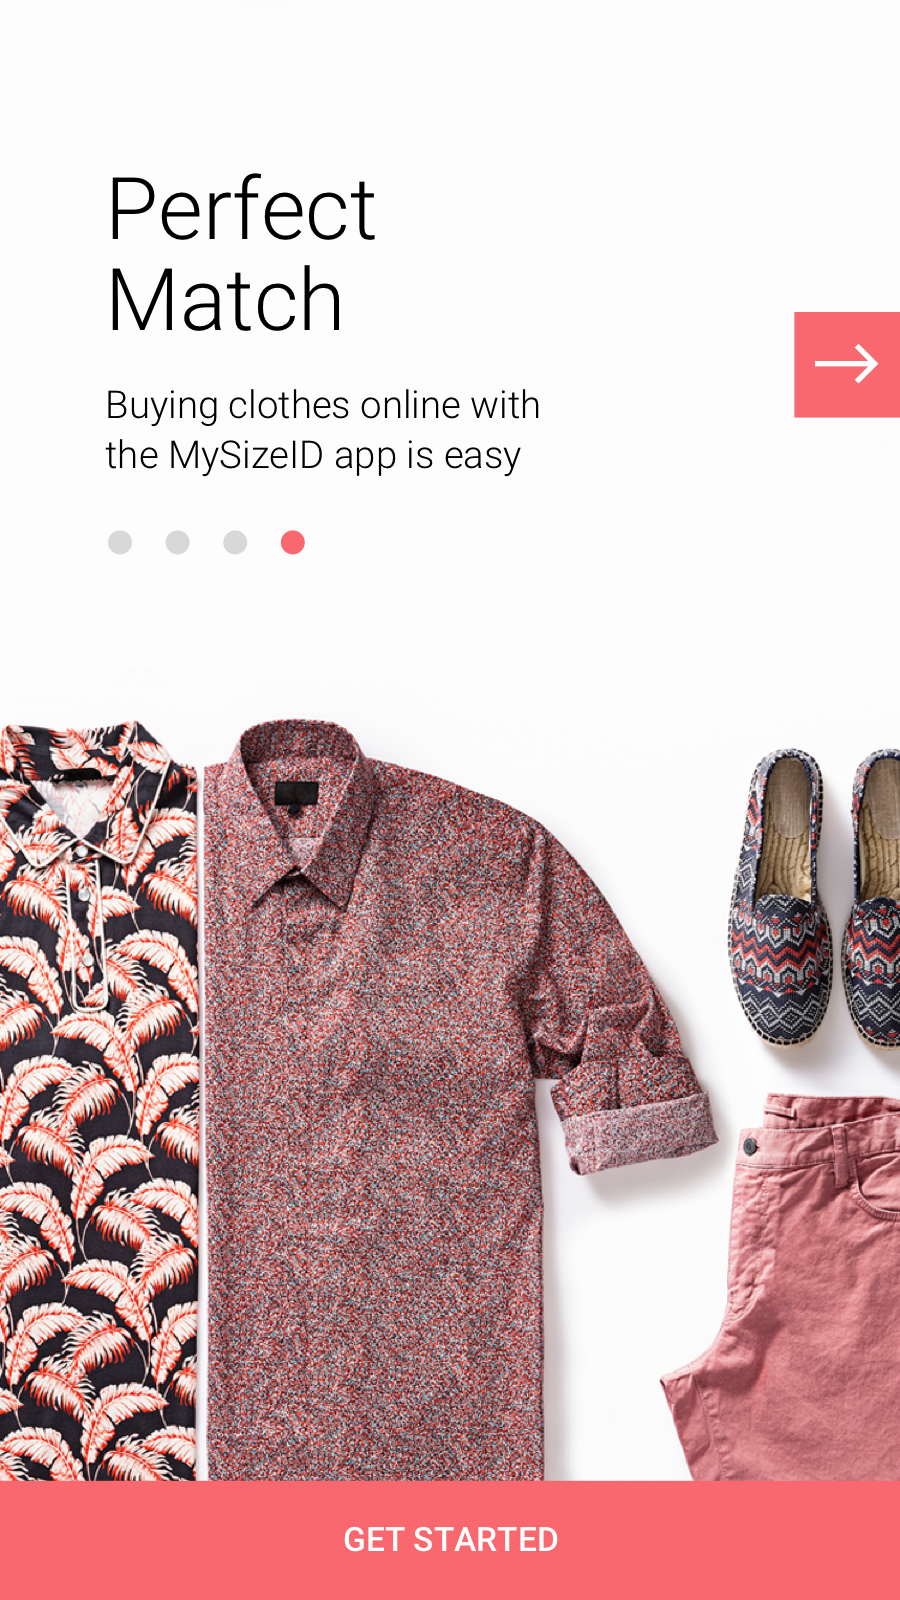 Buying clothes online with the MySizeID app is easy